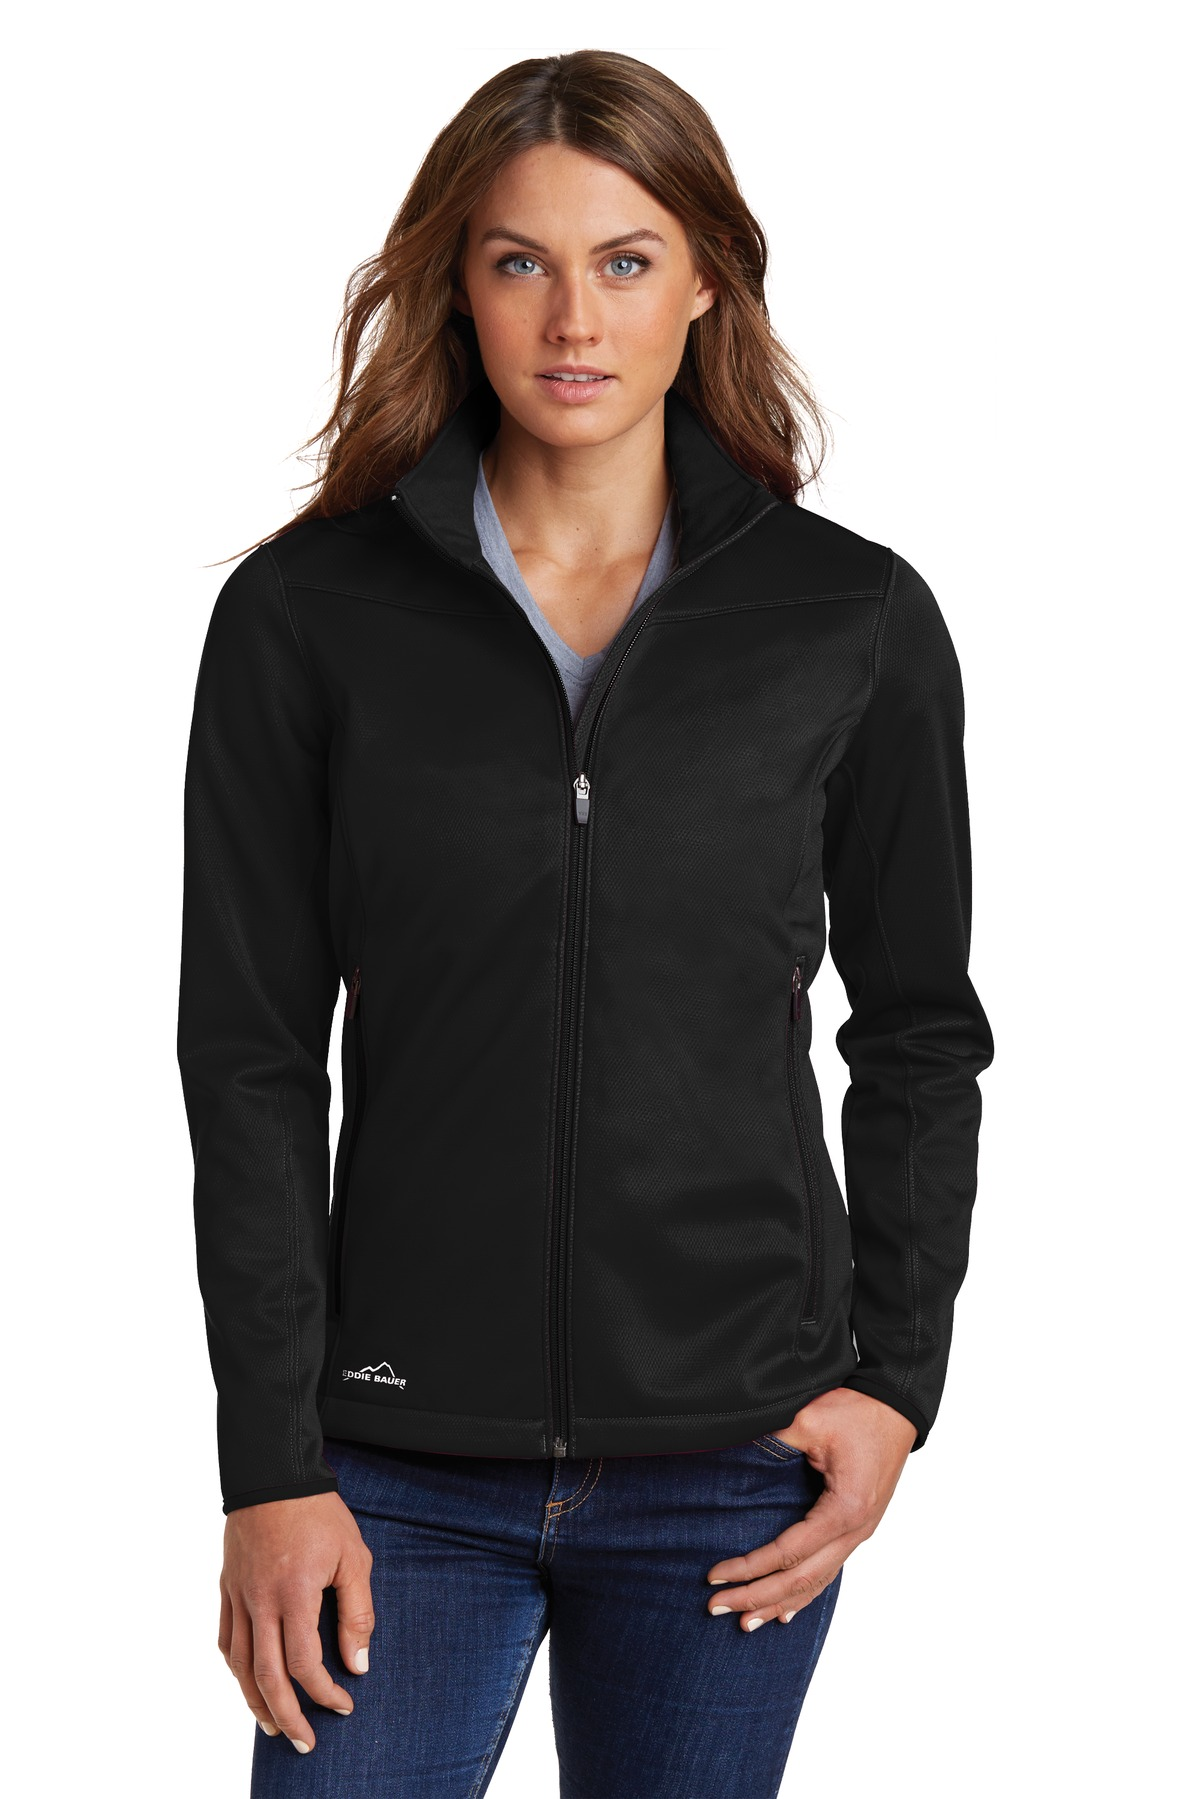 Eddie Bauer  EB539 - Ladies Weather-Resist Soft Shell ...